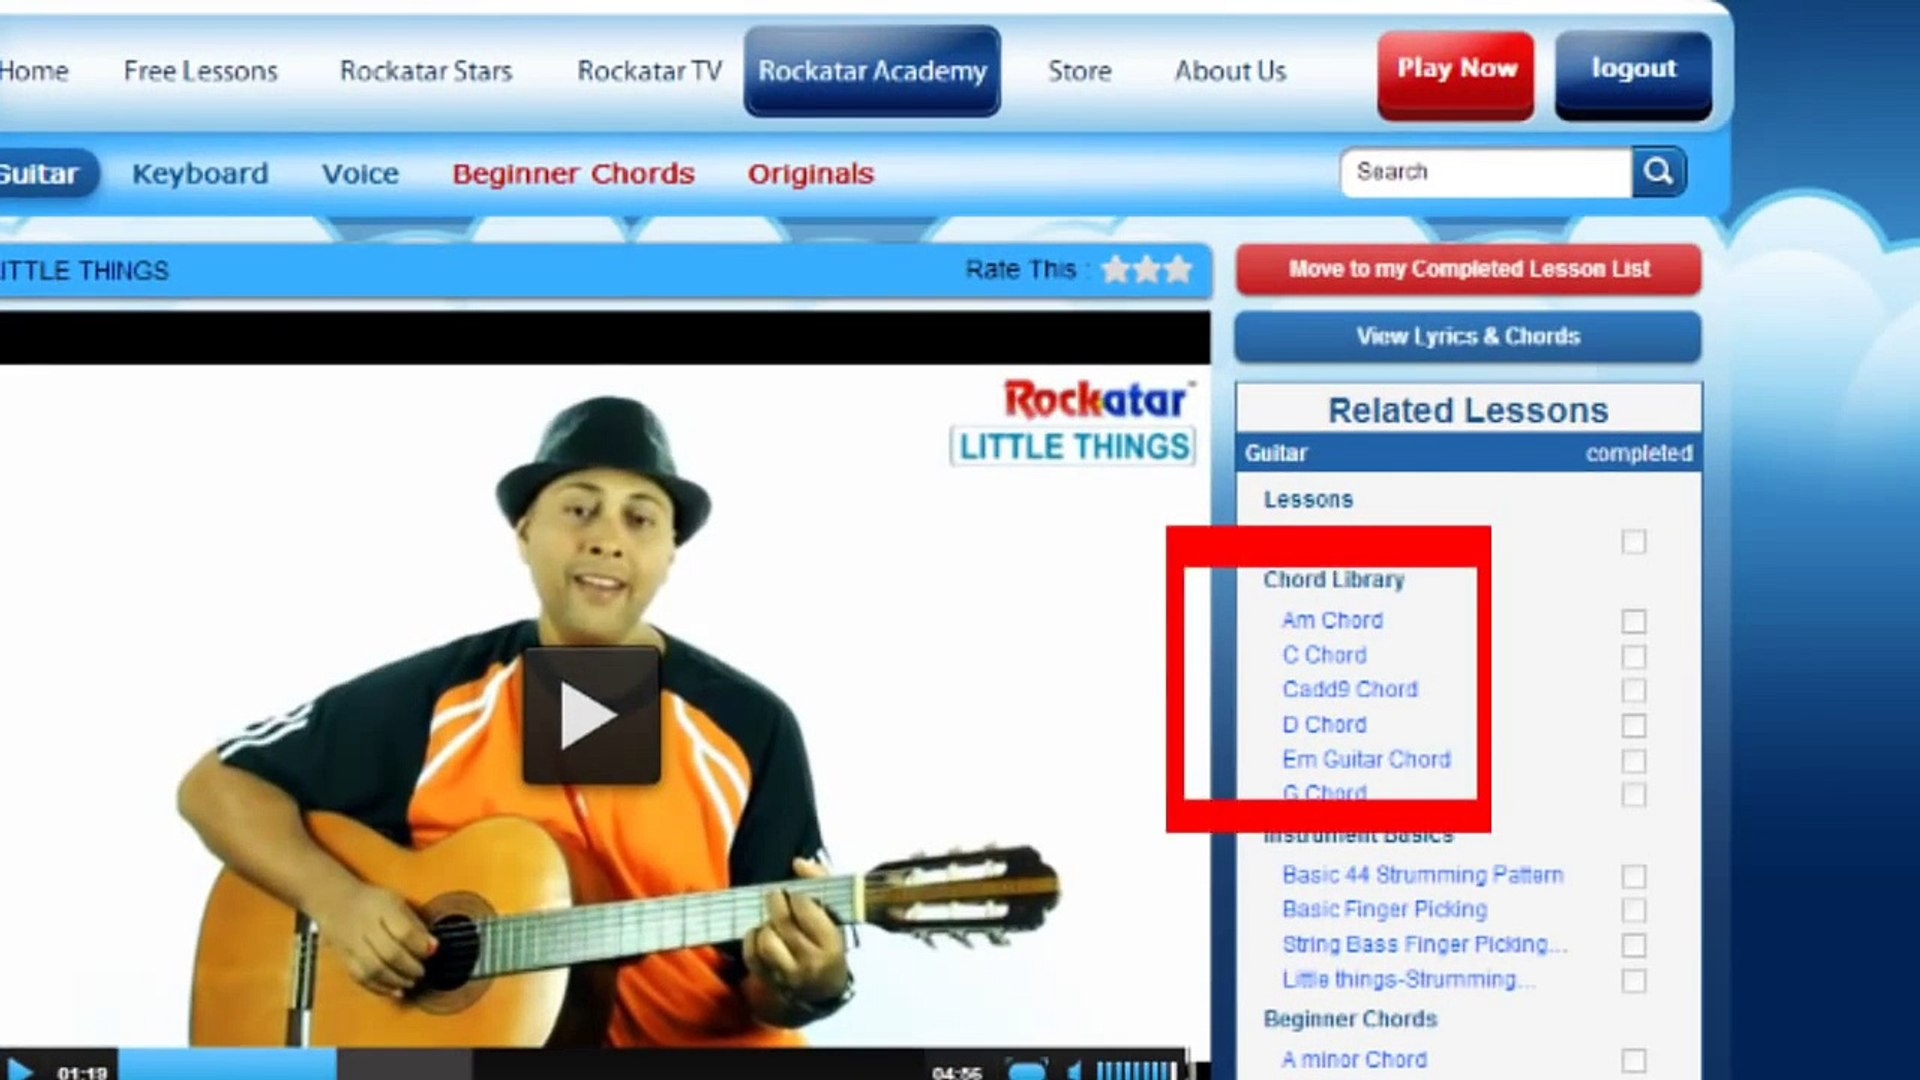 Guitar lessons for beginners - Kids music lessons - Kids guitar lessons - Learn guitar !